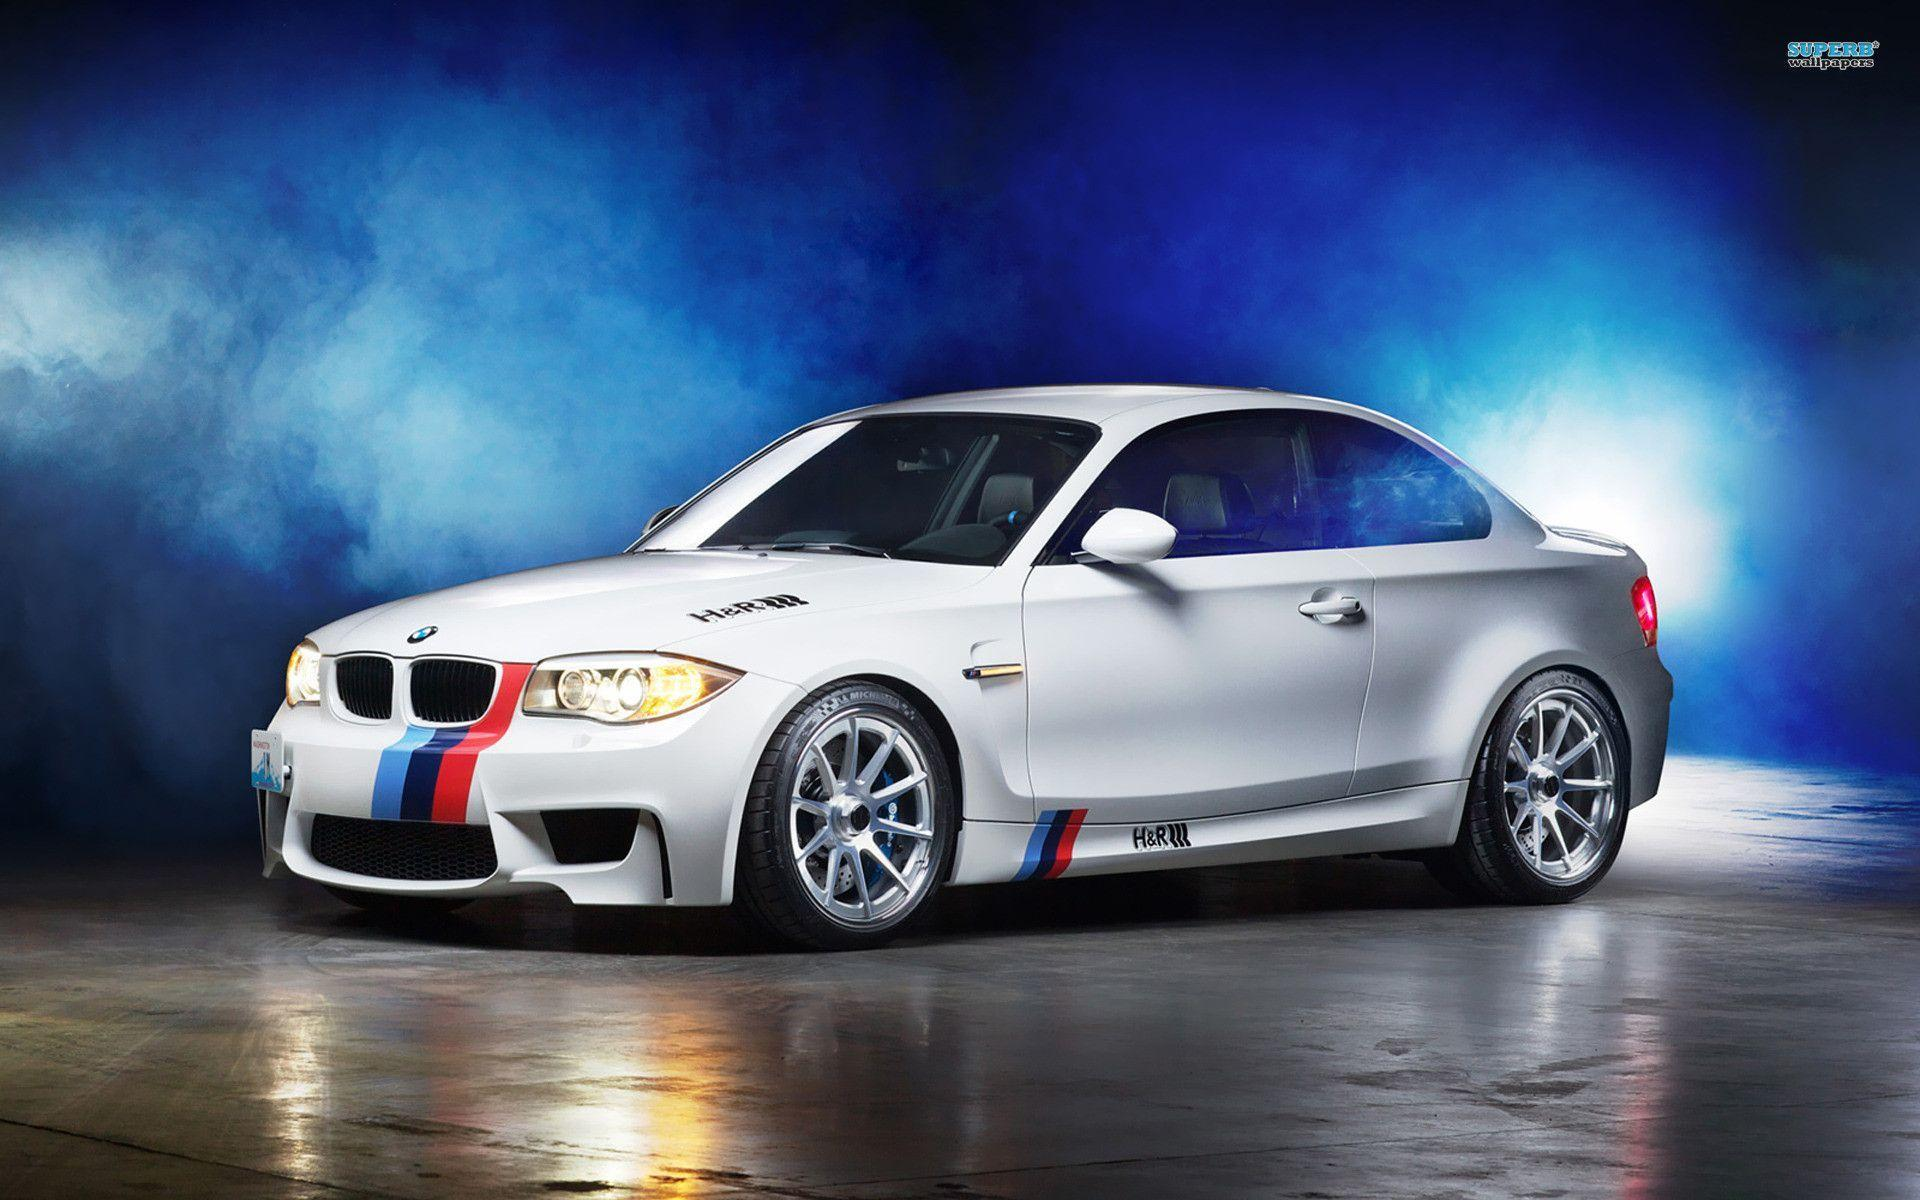 H&R BMW 1M Coupe Project Vehicle wallpapers